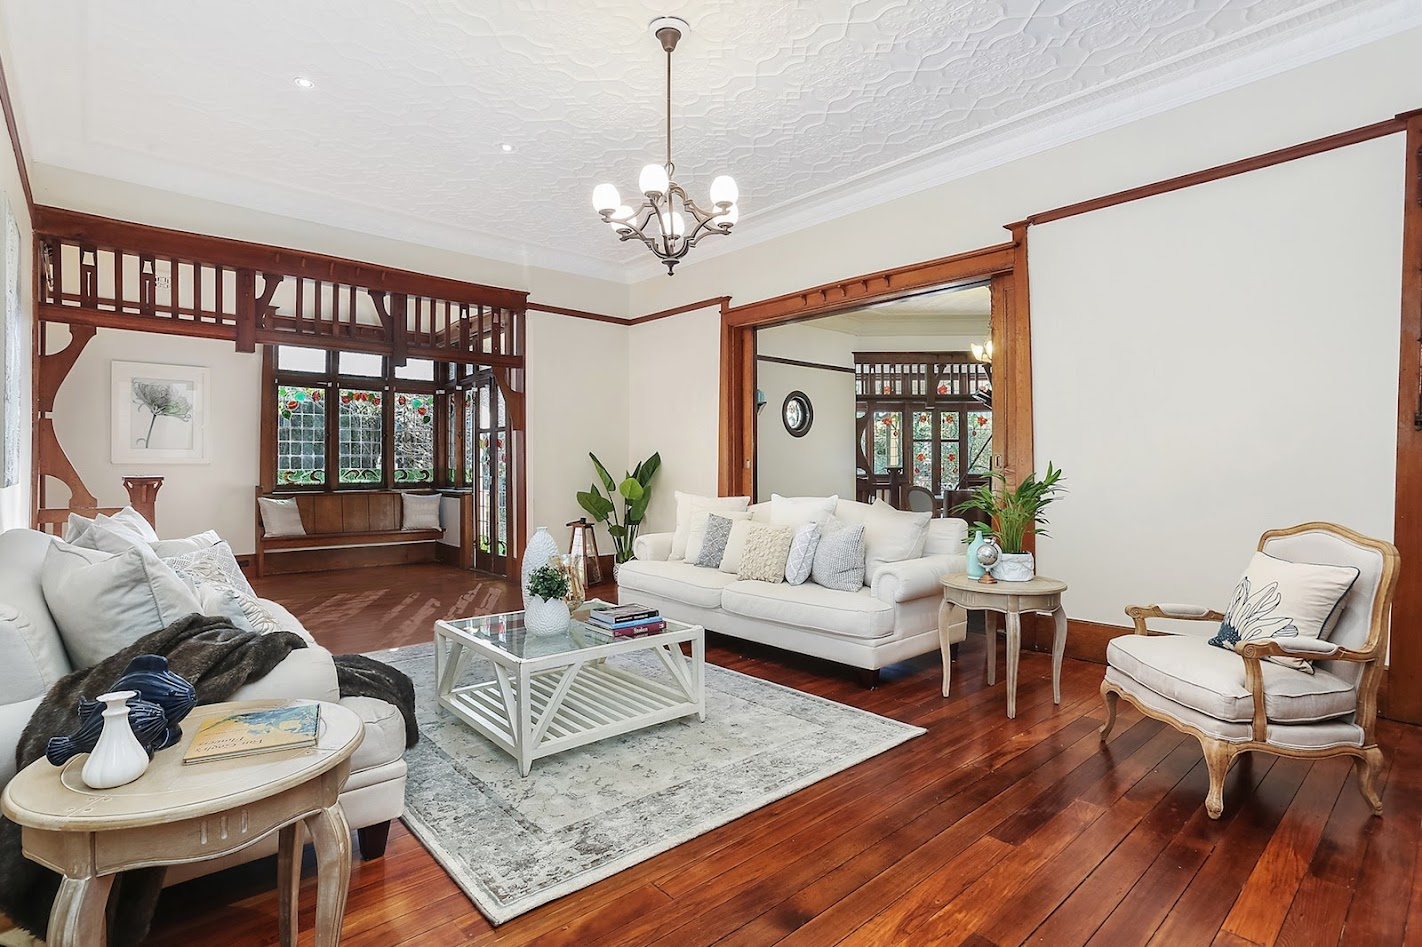 Ornate timber work and leadlight at Blairgowrie, 32 Abuklea Road, Epping NSW 2121